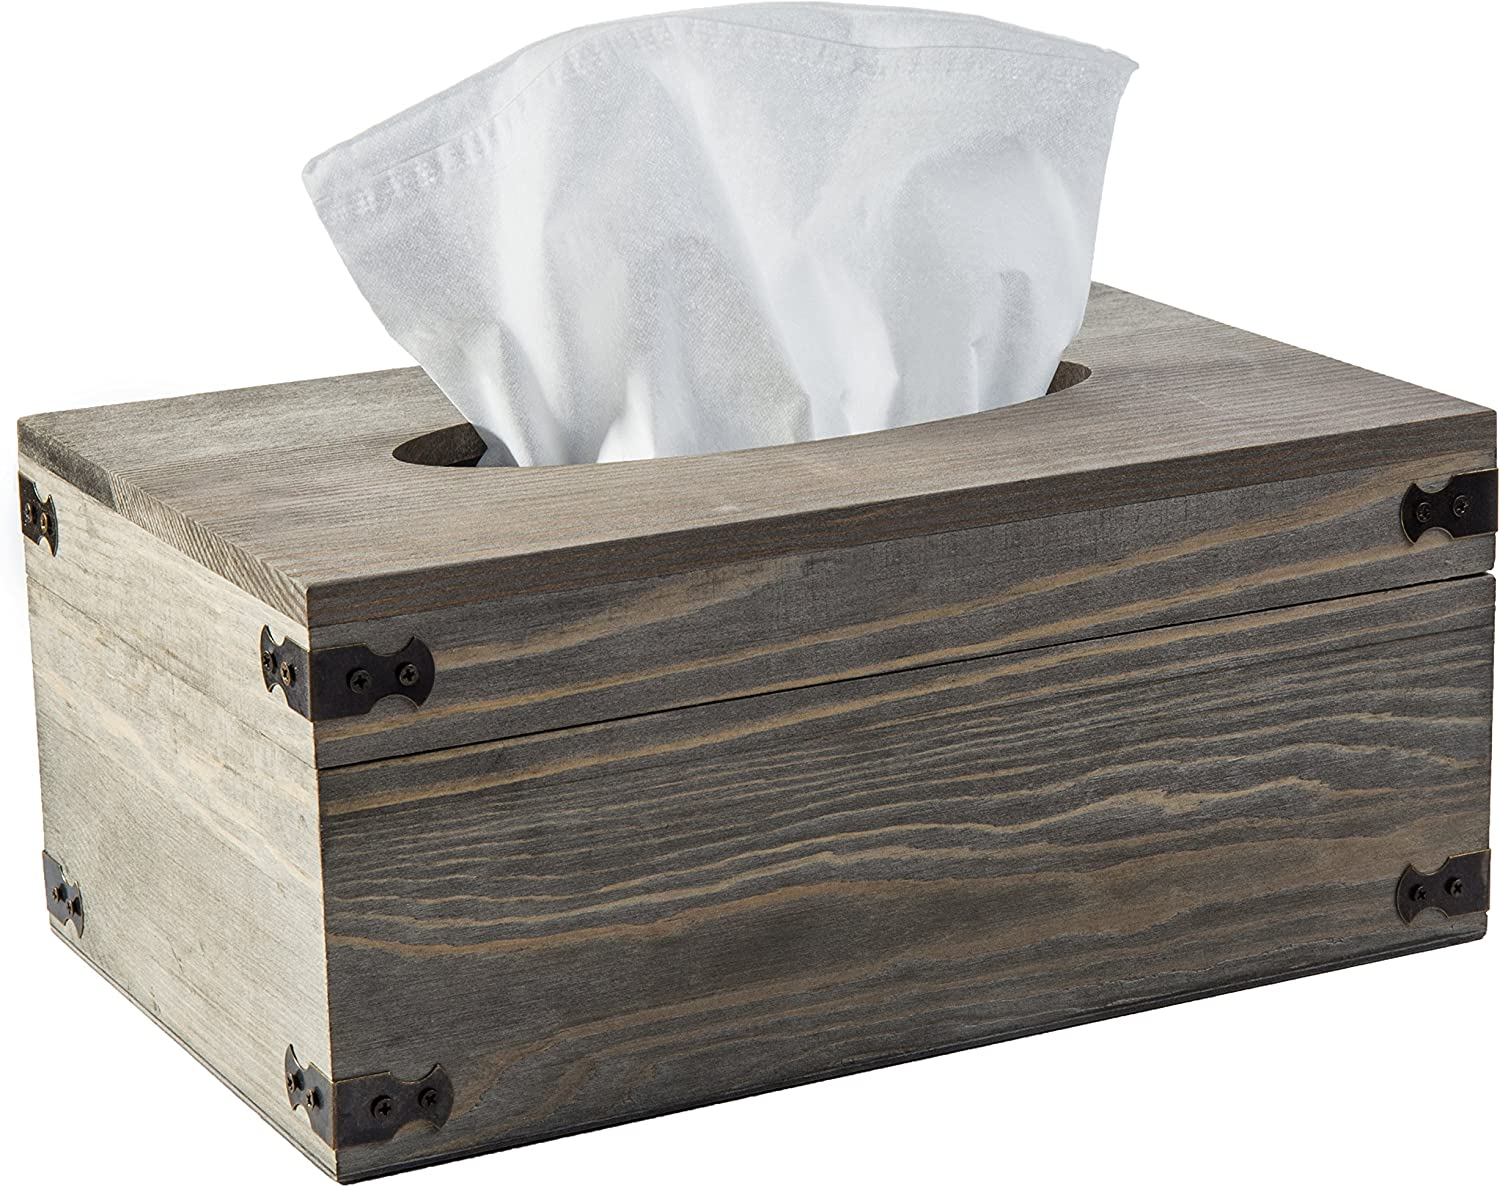 MyGift Distressed Gray Wood Rectangular Facial Tissue Box Holder with Hinged Lid